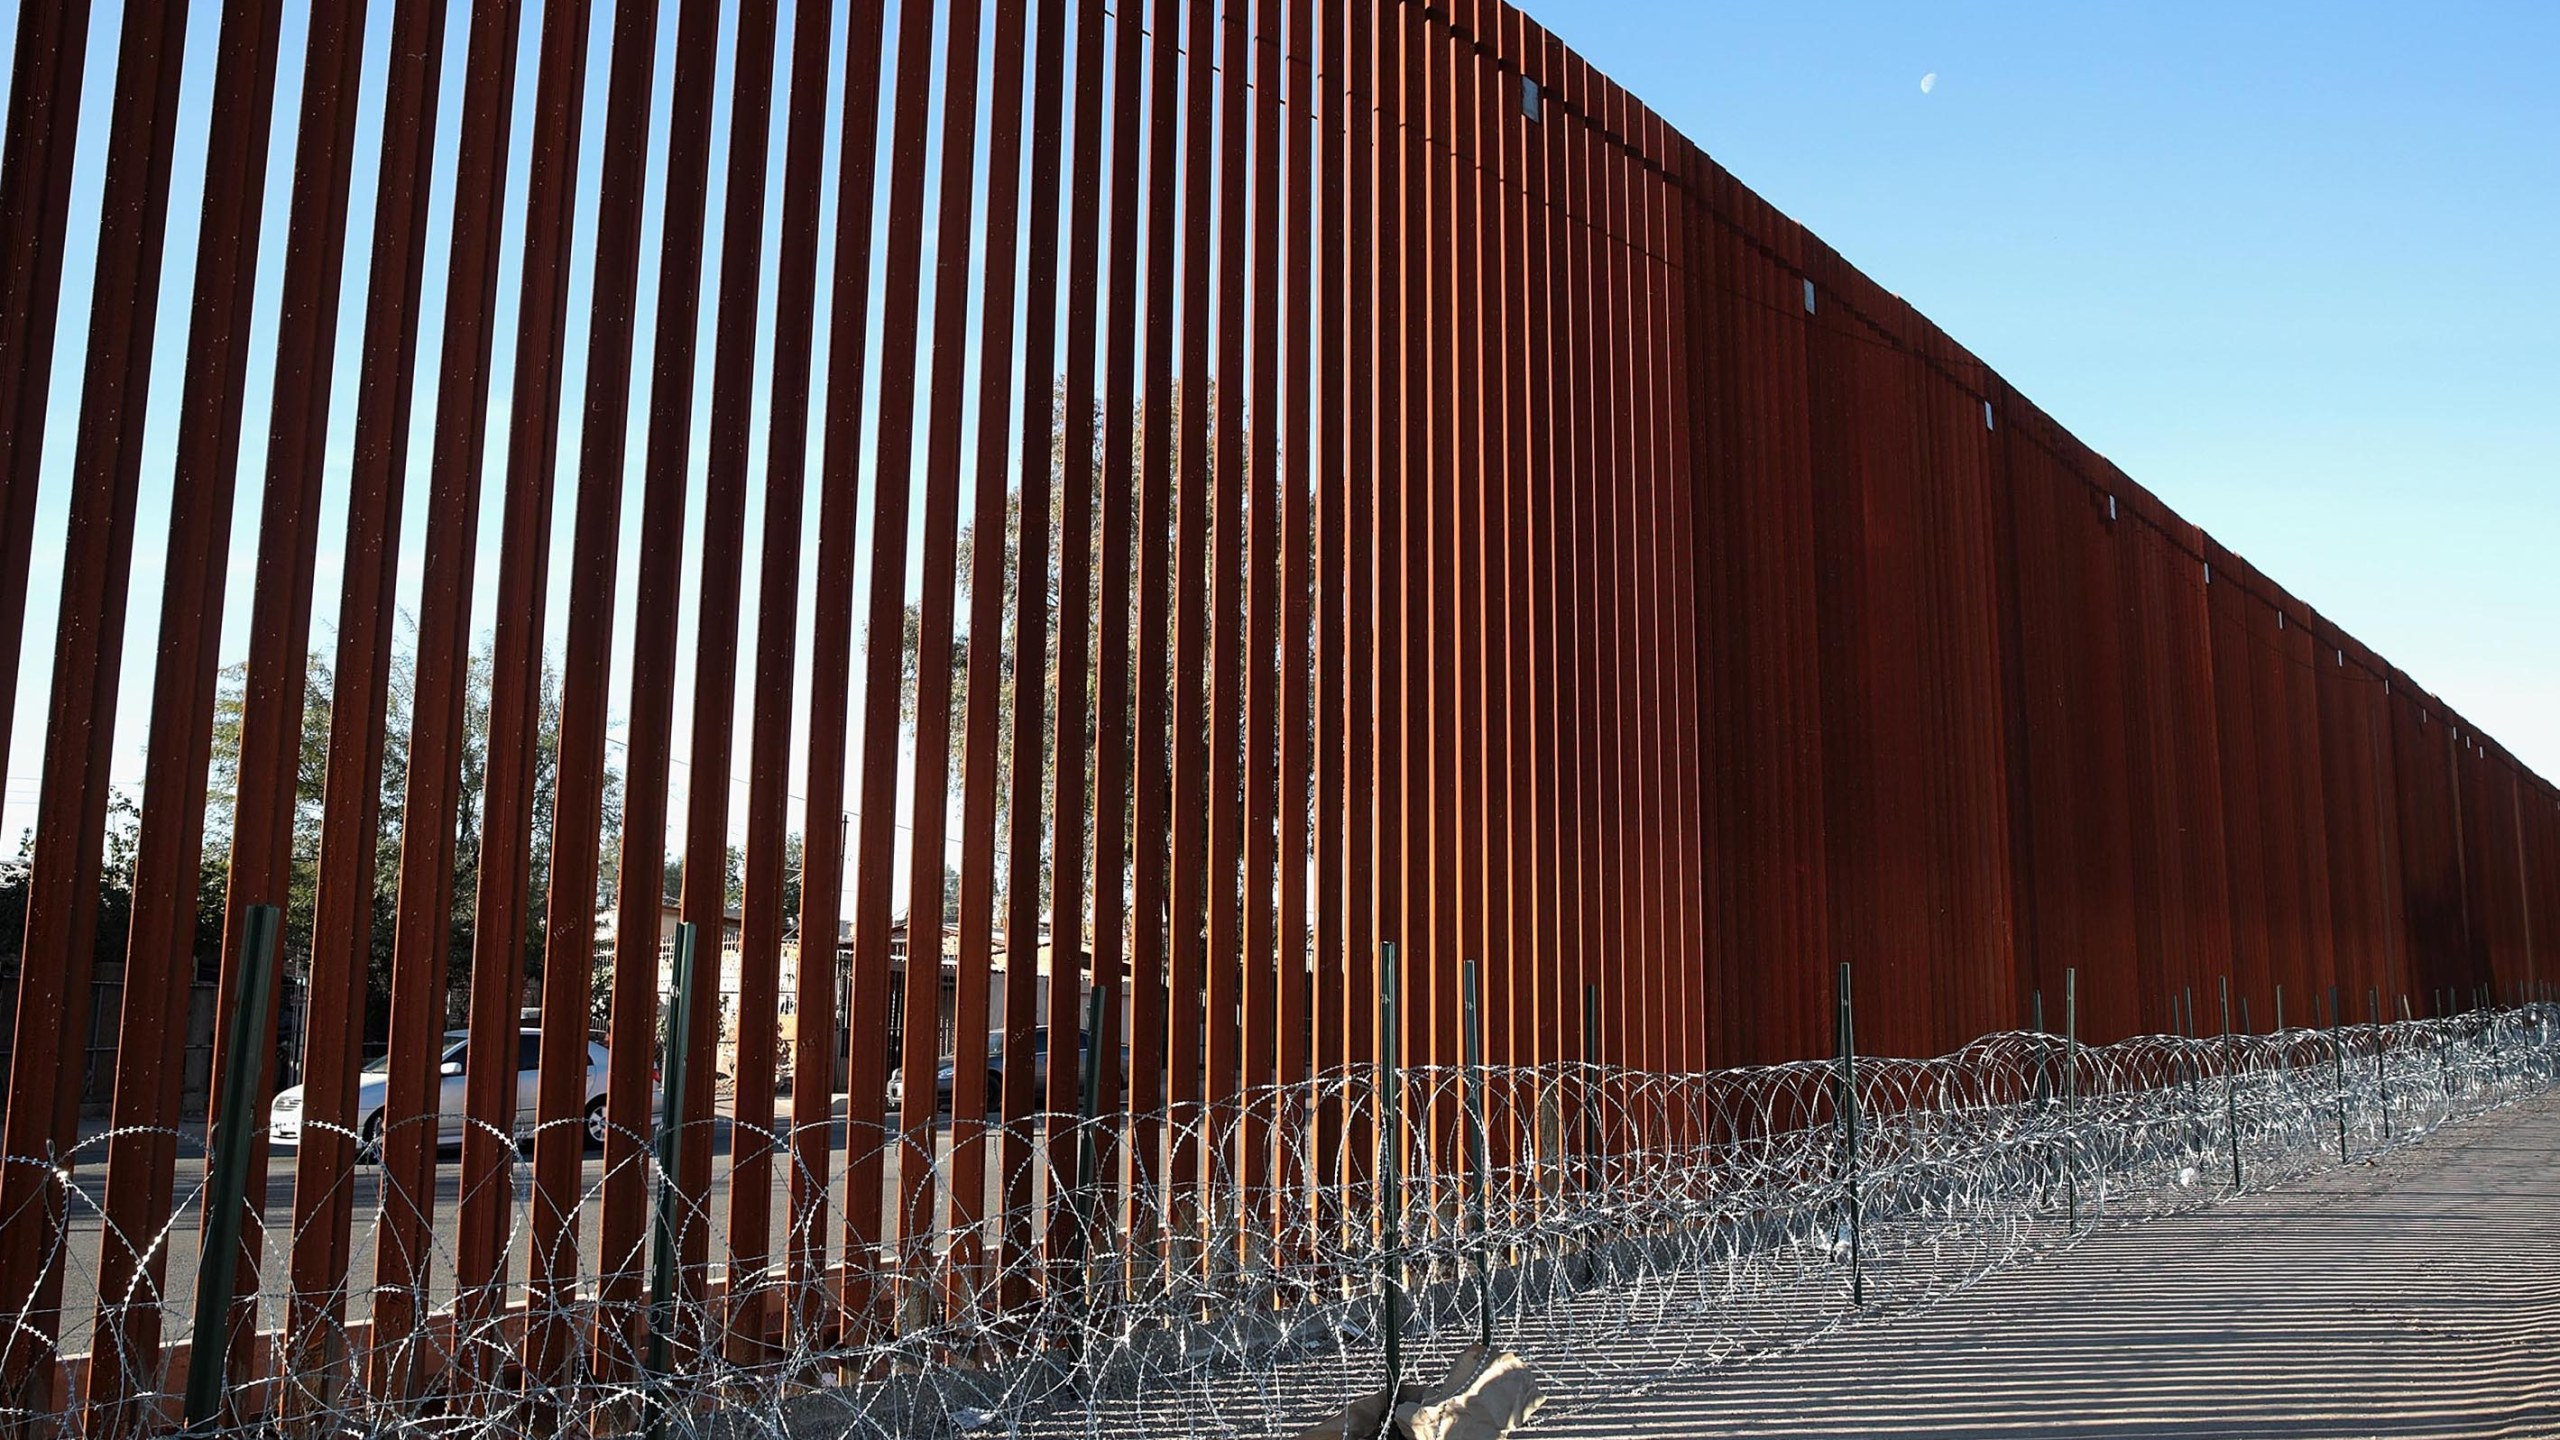 A steel and wire barrier runs along the border of the U.S. and Mexico on Jan. 26, 2019 in Calexico. (Credit: Scott Olson/Getty Images)